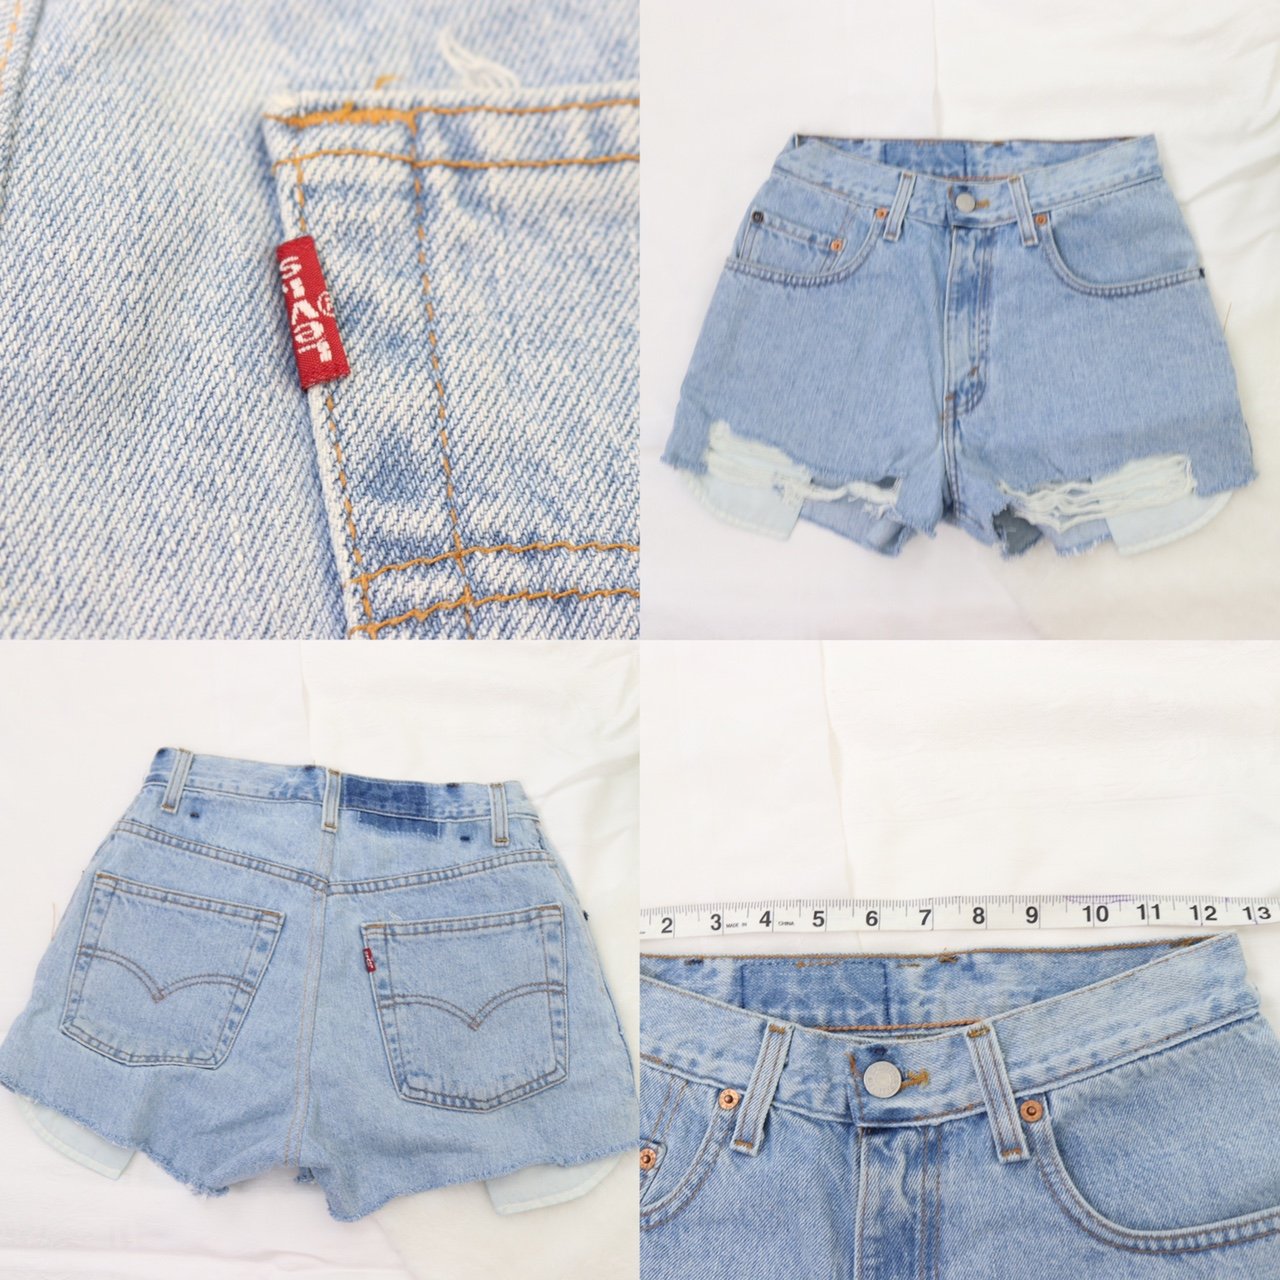 Levi's- Vintage High Waisted Reworked Shorts